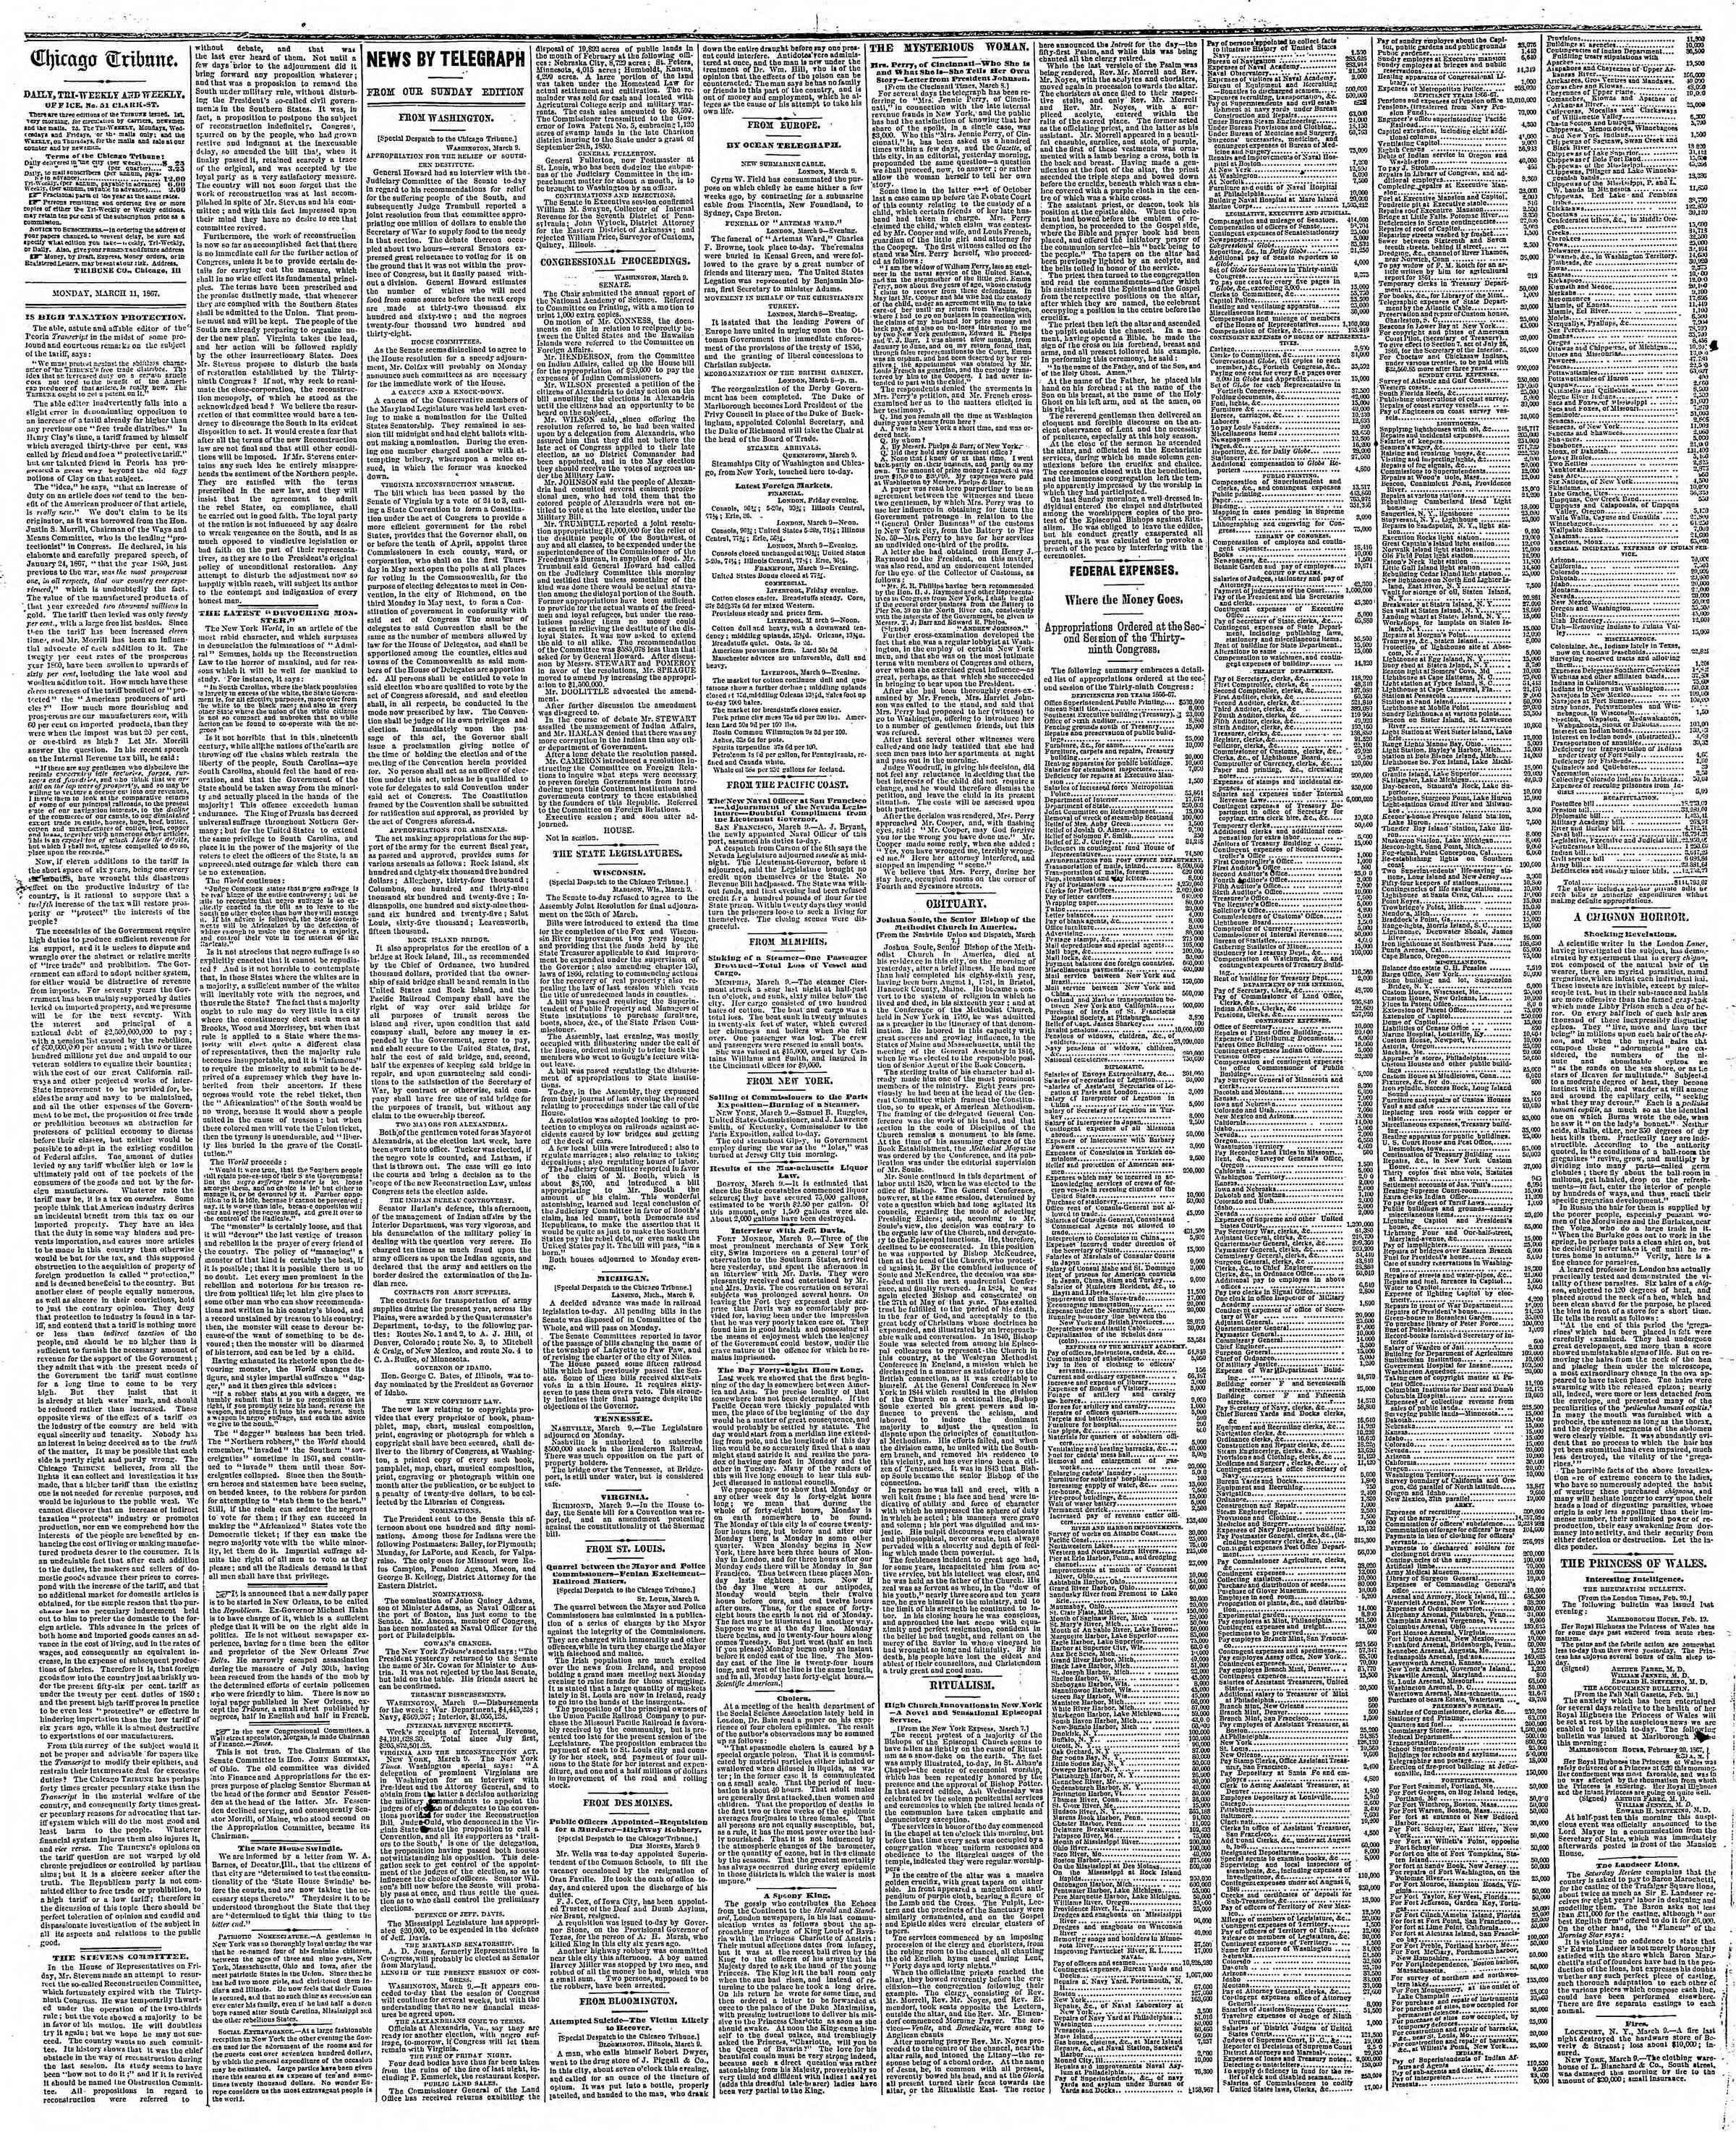 Newspaper of The Chicago Tribune dated March 11, 1867 Page 2